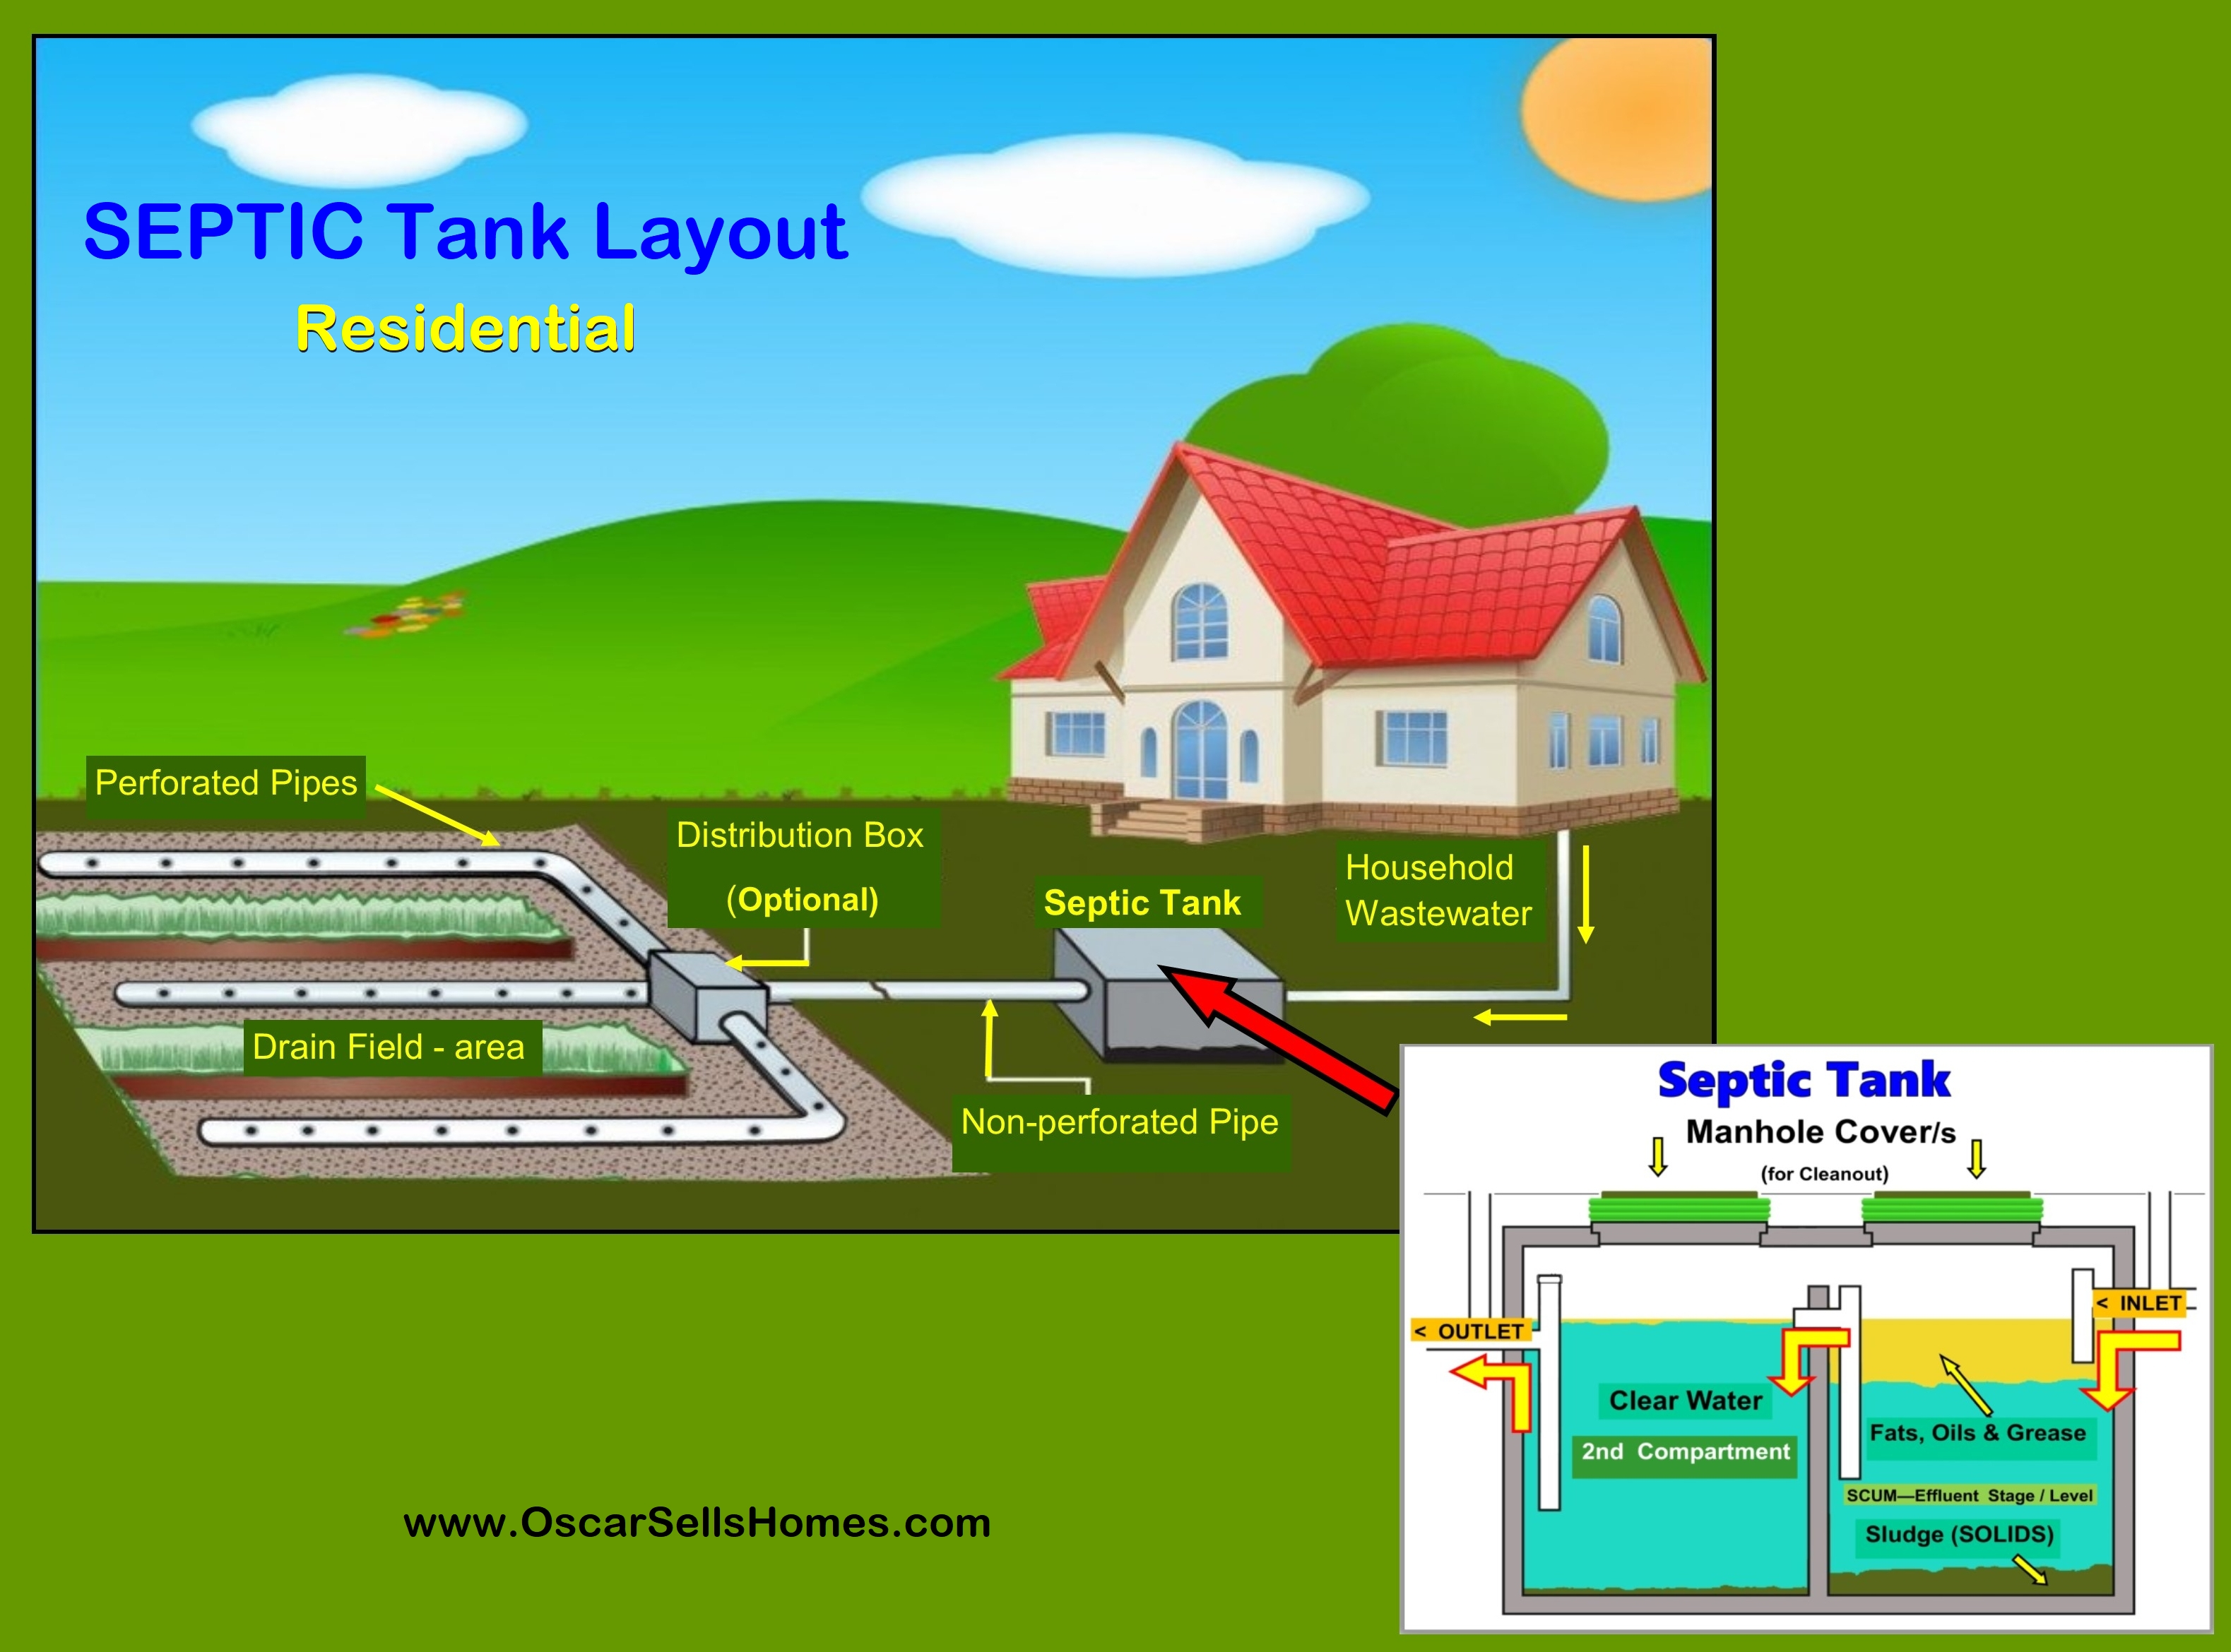 SEPTIC TANK SYSTEM - Things to know about